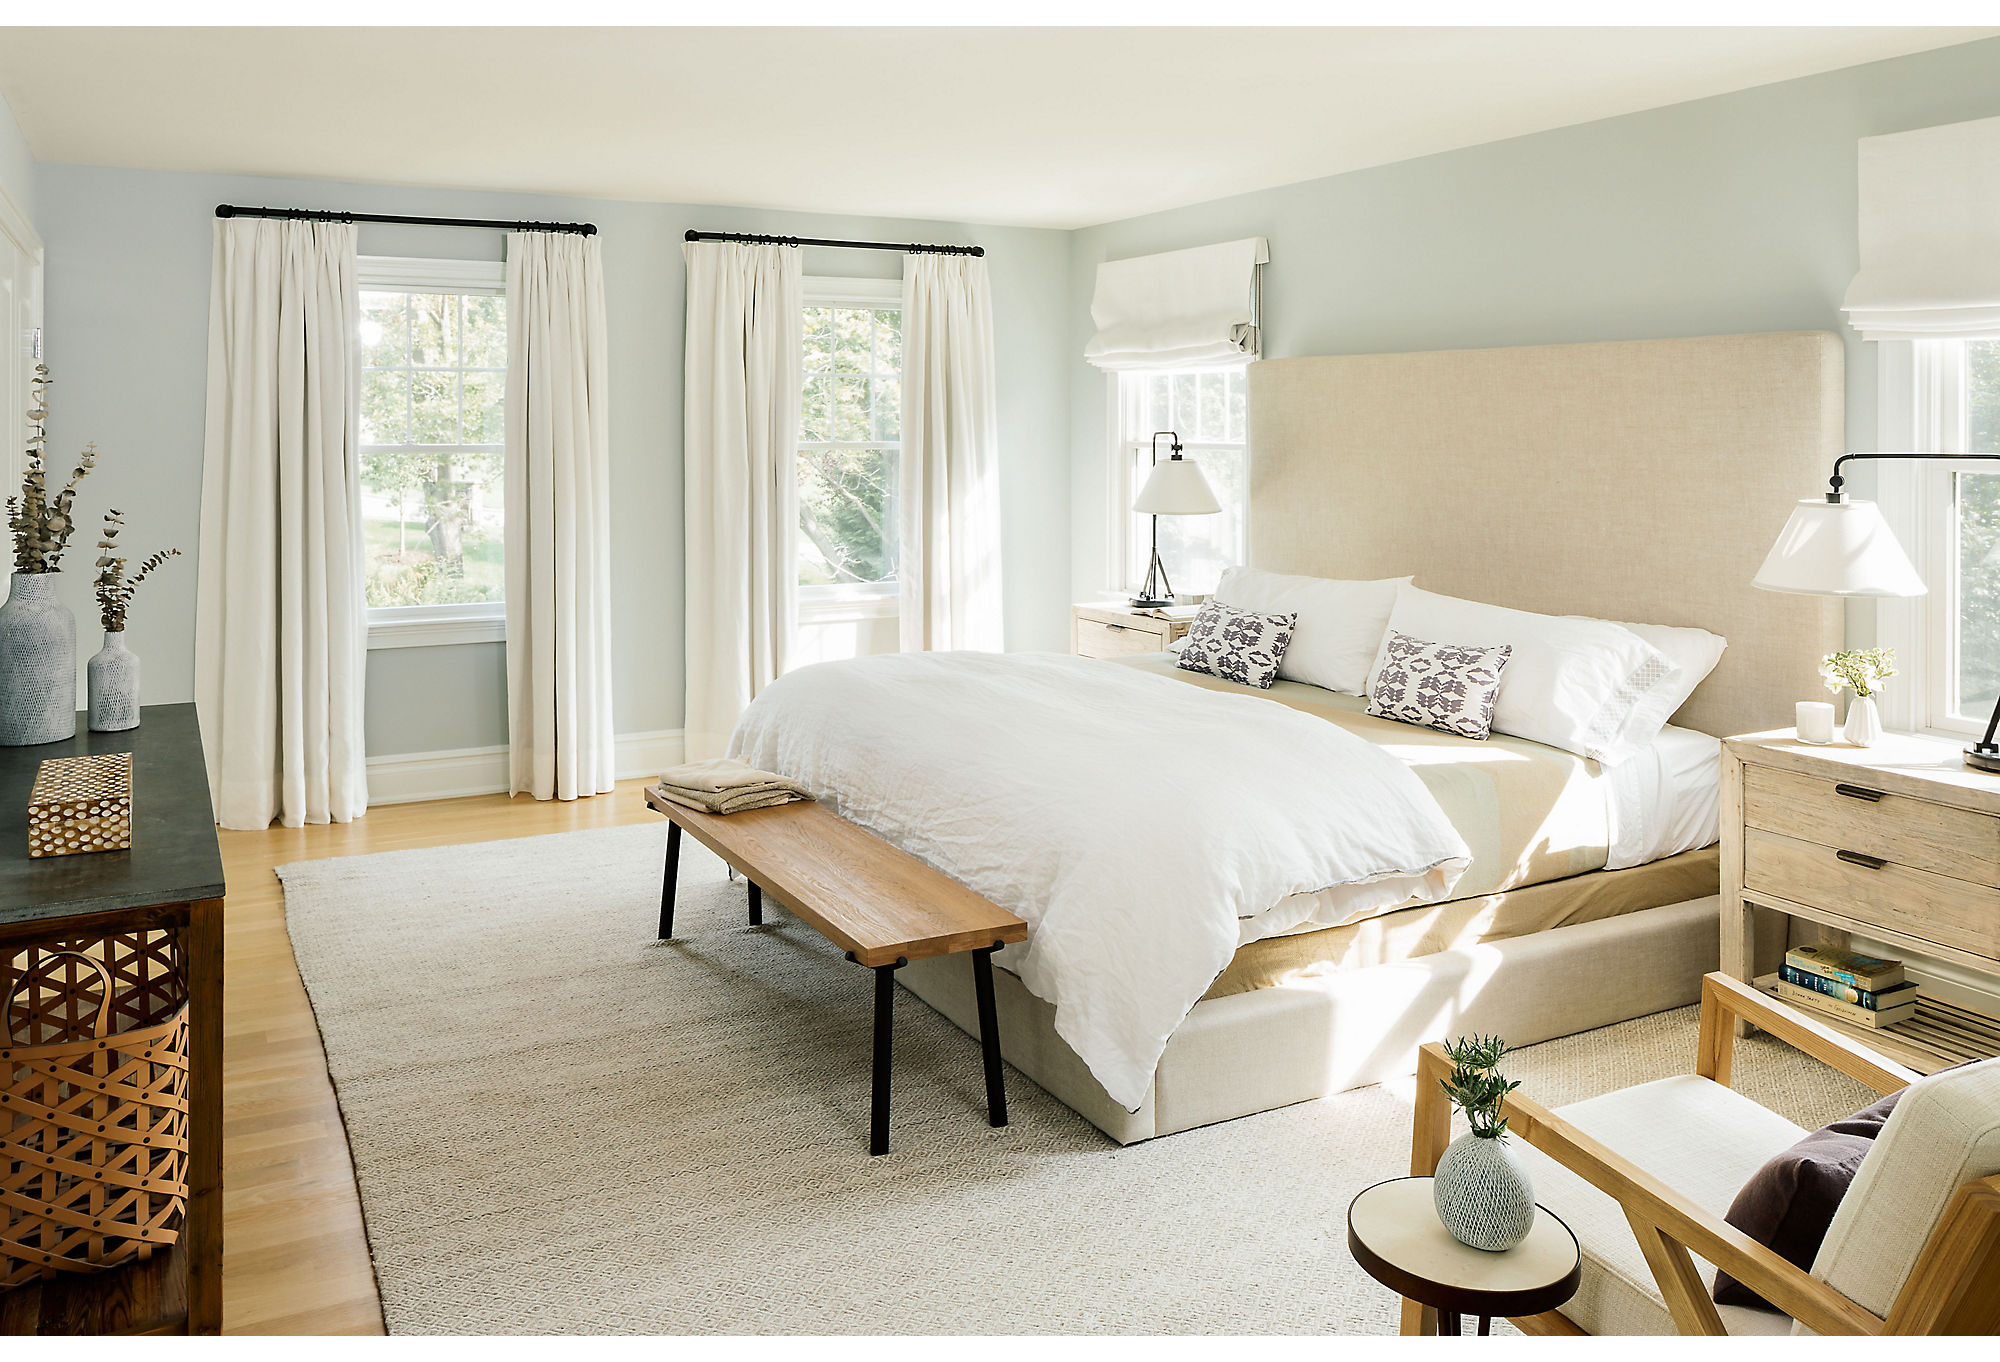 The couple gravitated to more-industrial elements, so Chauncey set about softening that look in the master bedroom with simple white drapes and a muted palette. The room is painted in Horizon from Benjamin Moore. Table lamps from Ralph Lauren Home serve as bedside lighting.